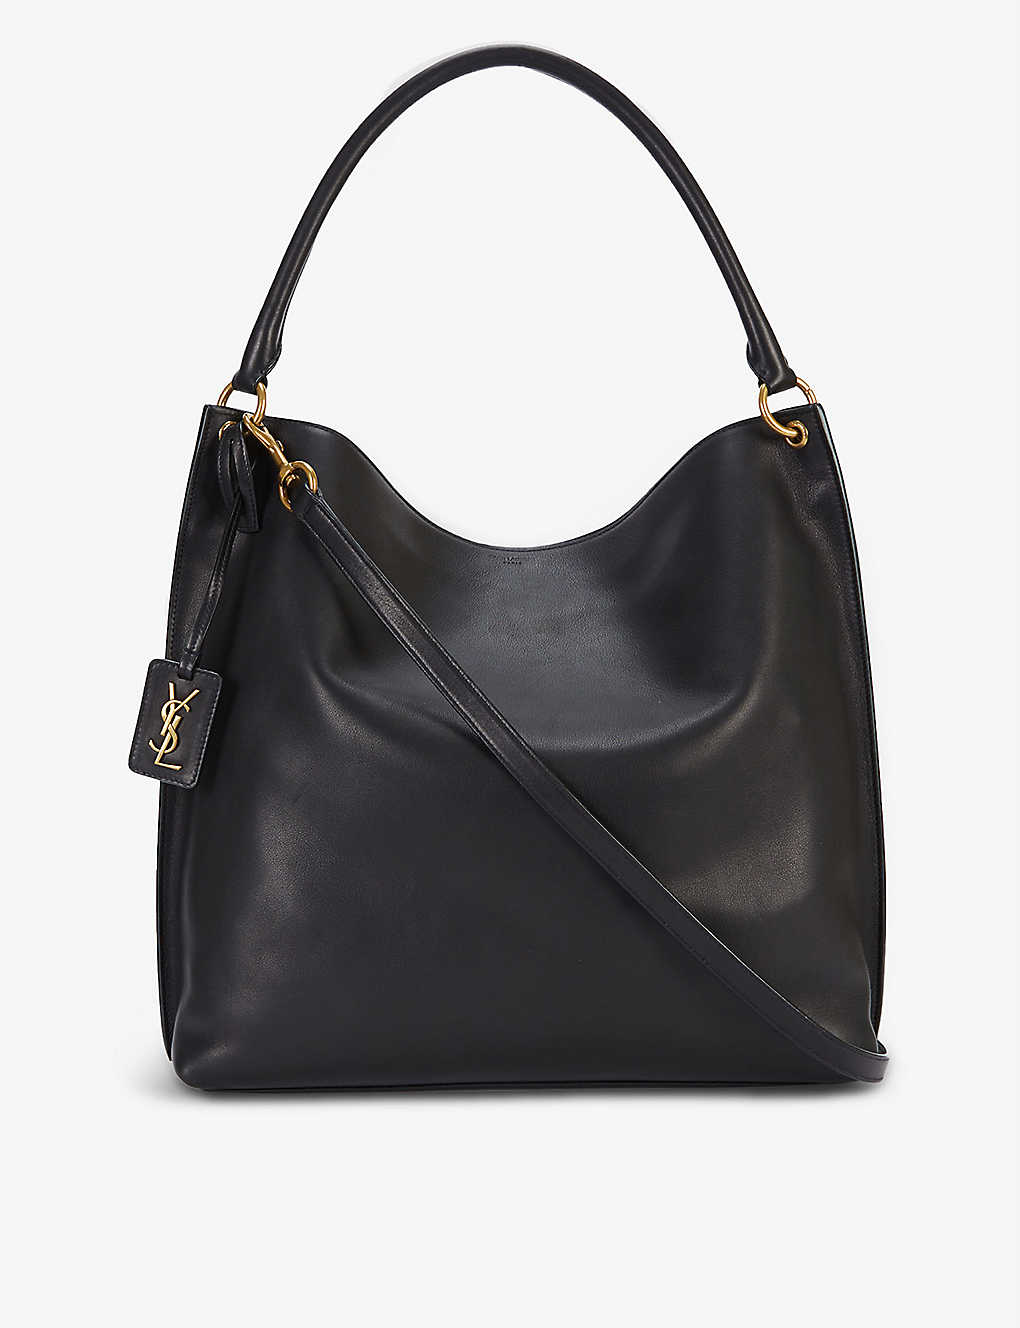 SAINT LAURENT: Leather hobo bag